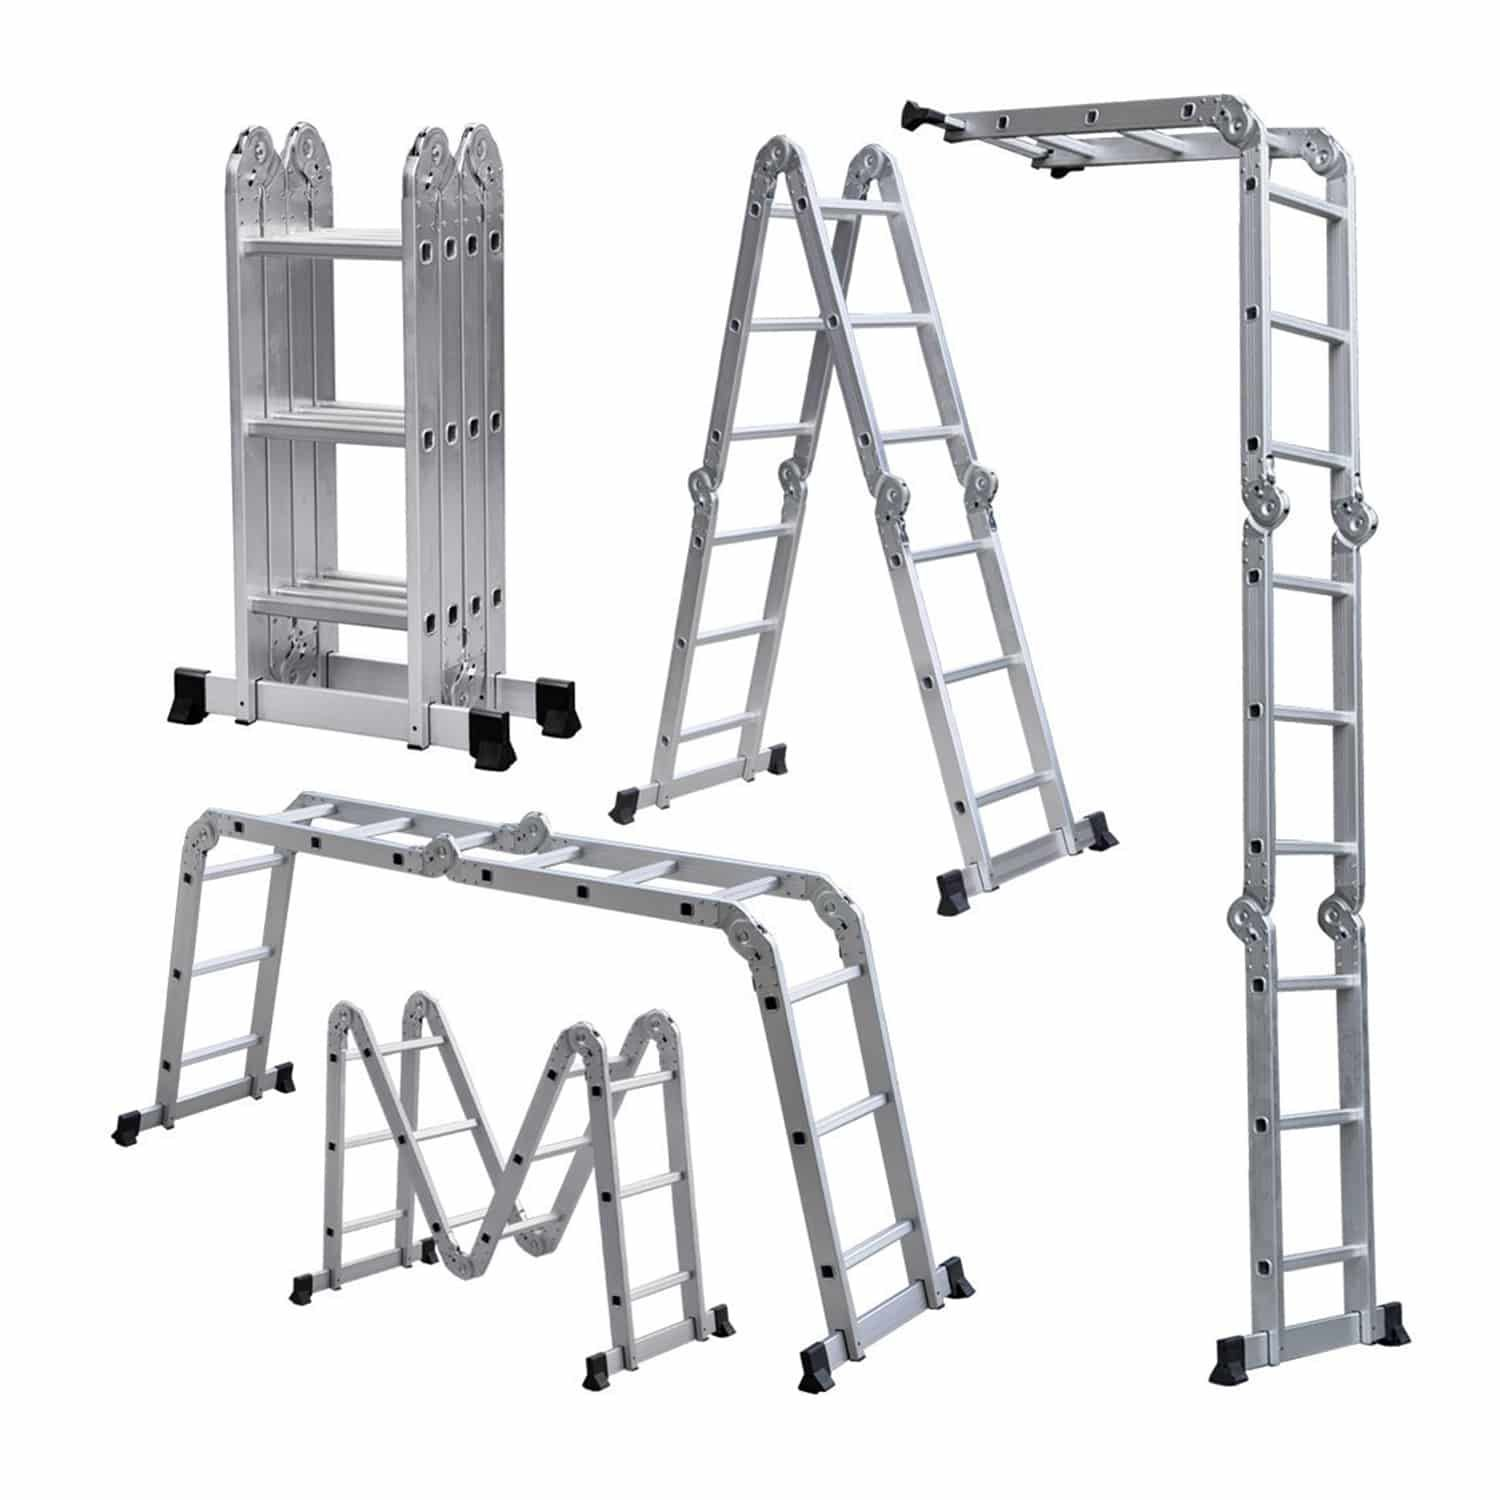 Lightweight 12 Aluminum Multipurpose Ladder Multi Purpose Ladder Aluminium Ladder Folding Ladder